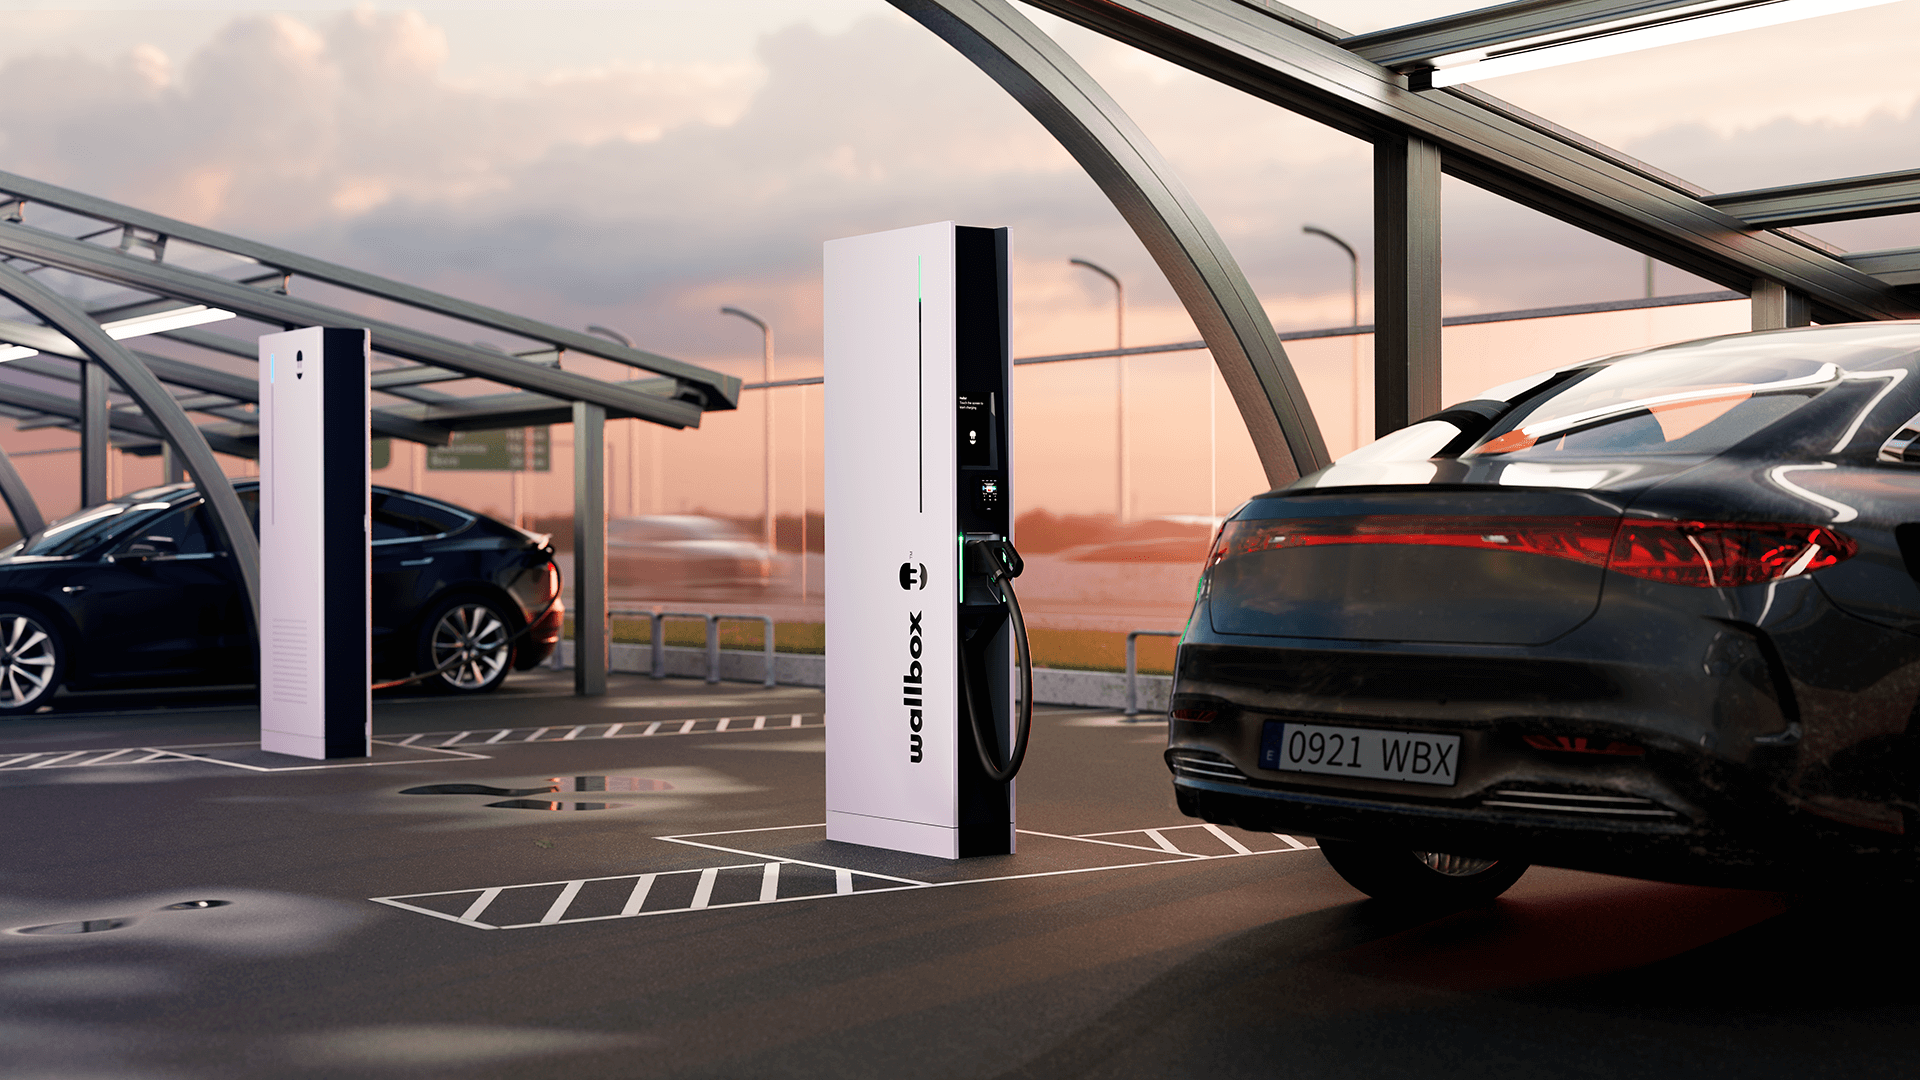 Wallbox unveils ultrafast public charger that will fully charge an electric vehicle in under 15 minutes